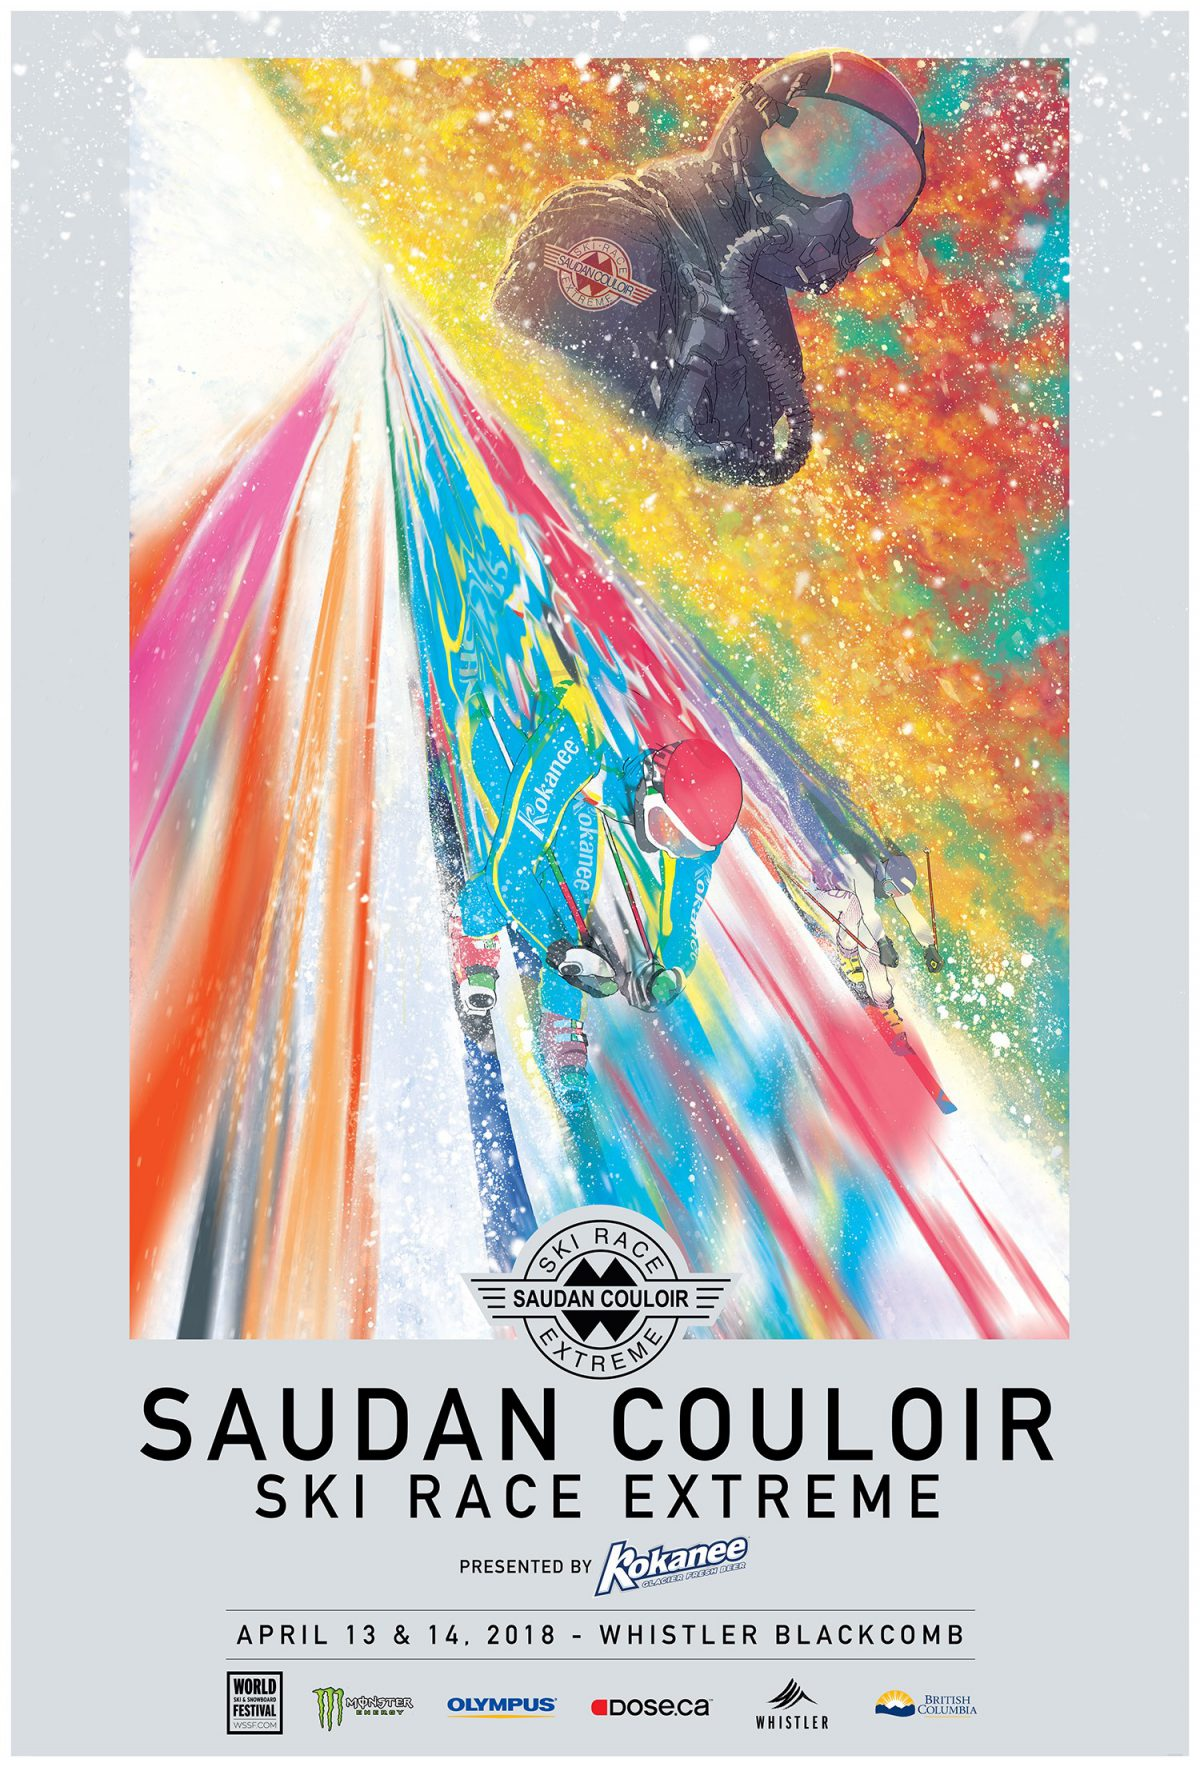 Poster for the Saudan Couloir Ski Race Extreme